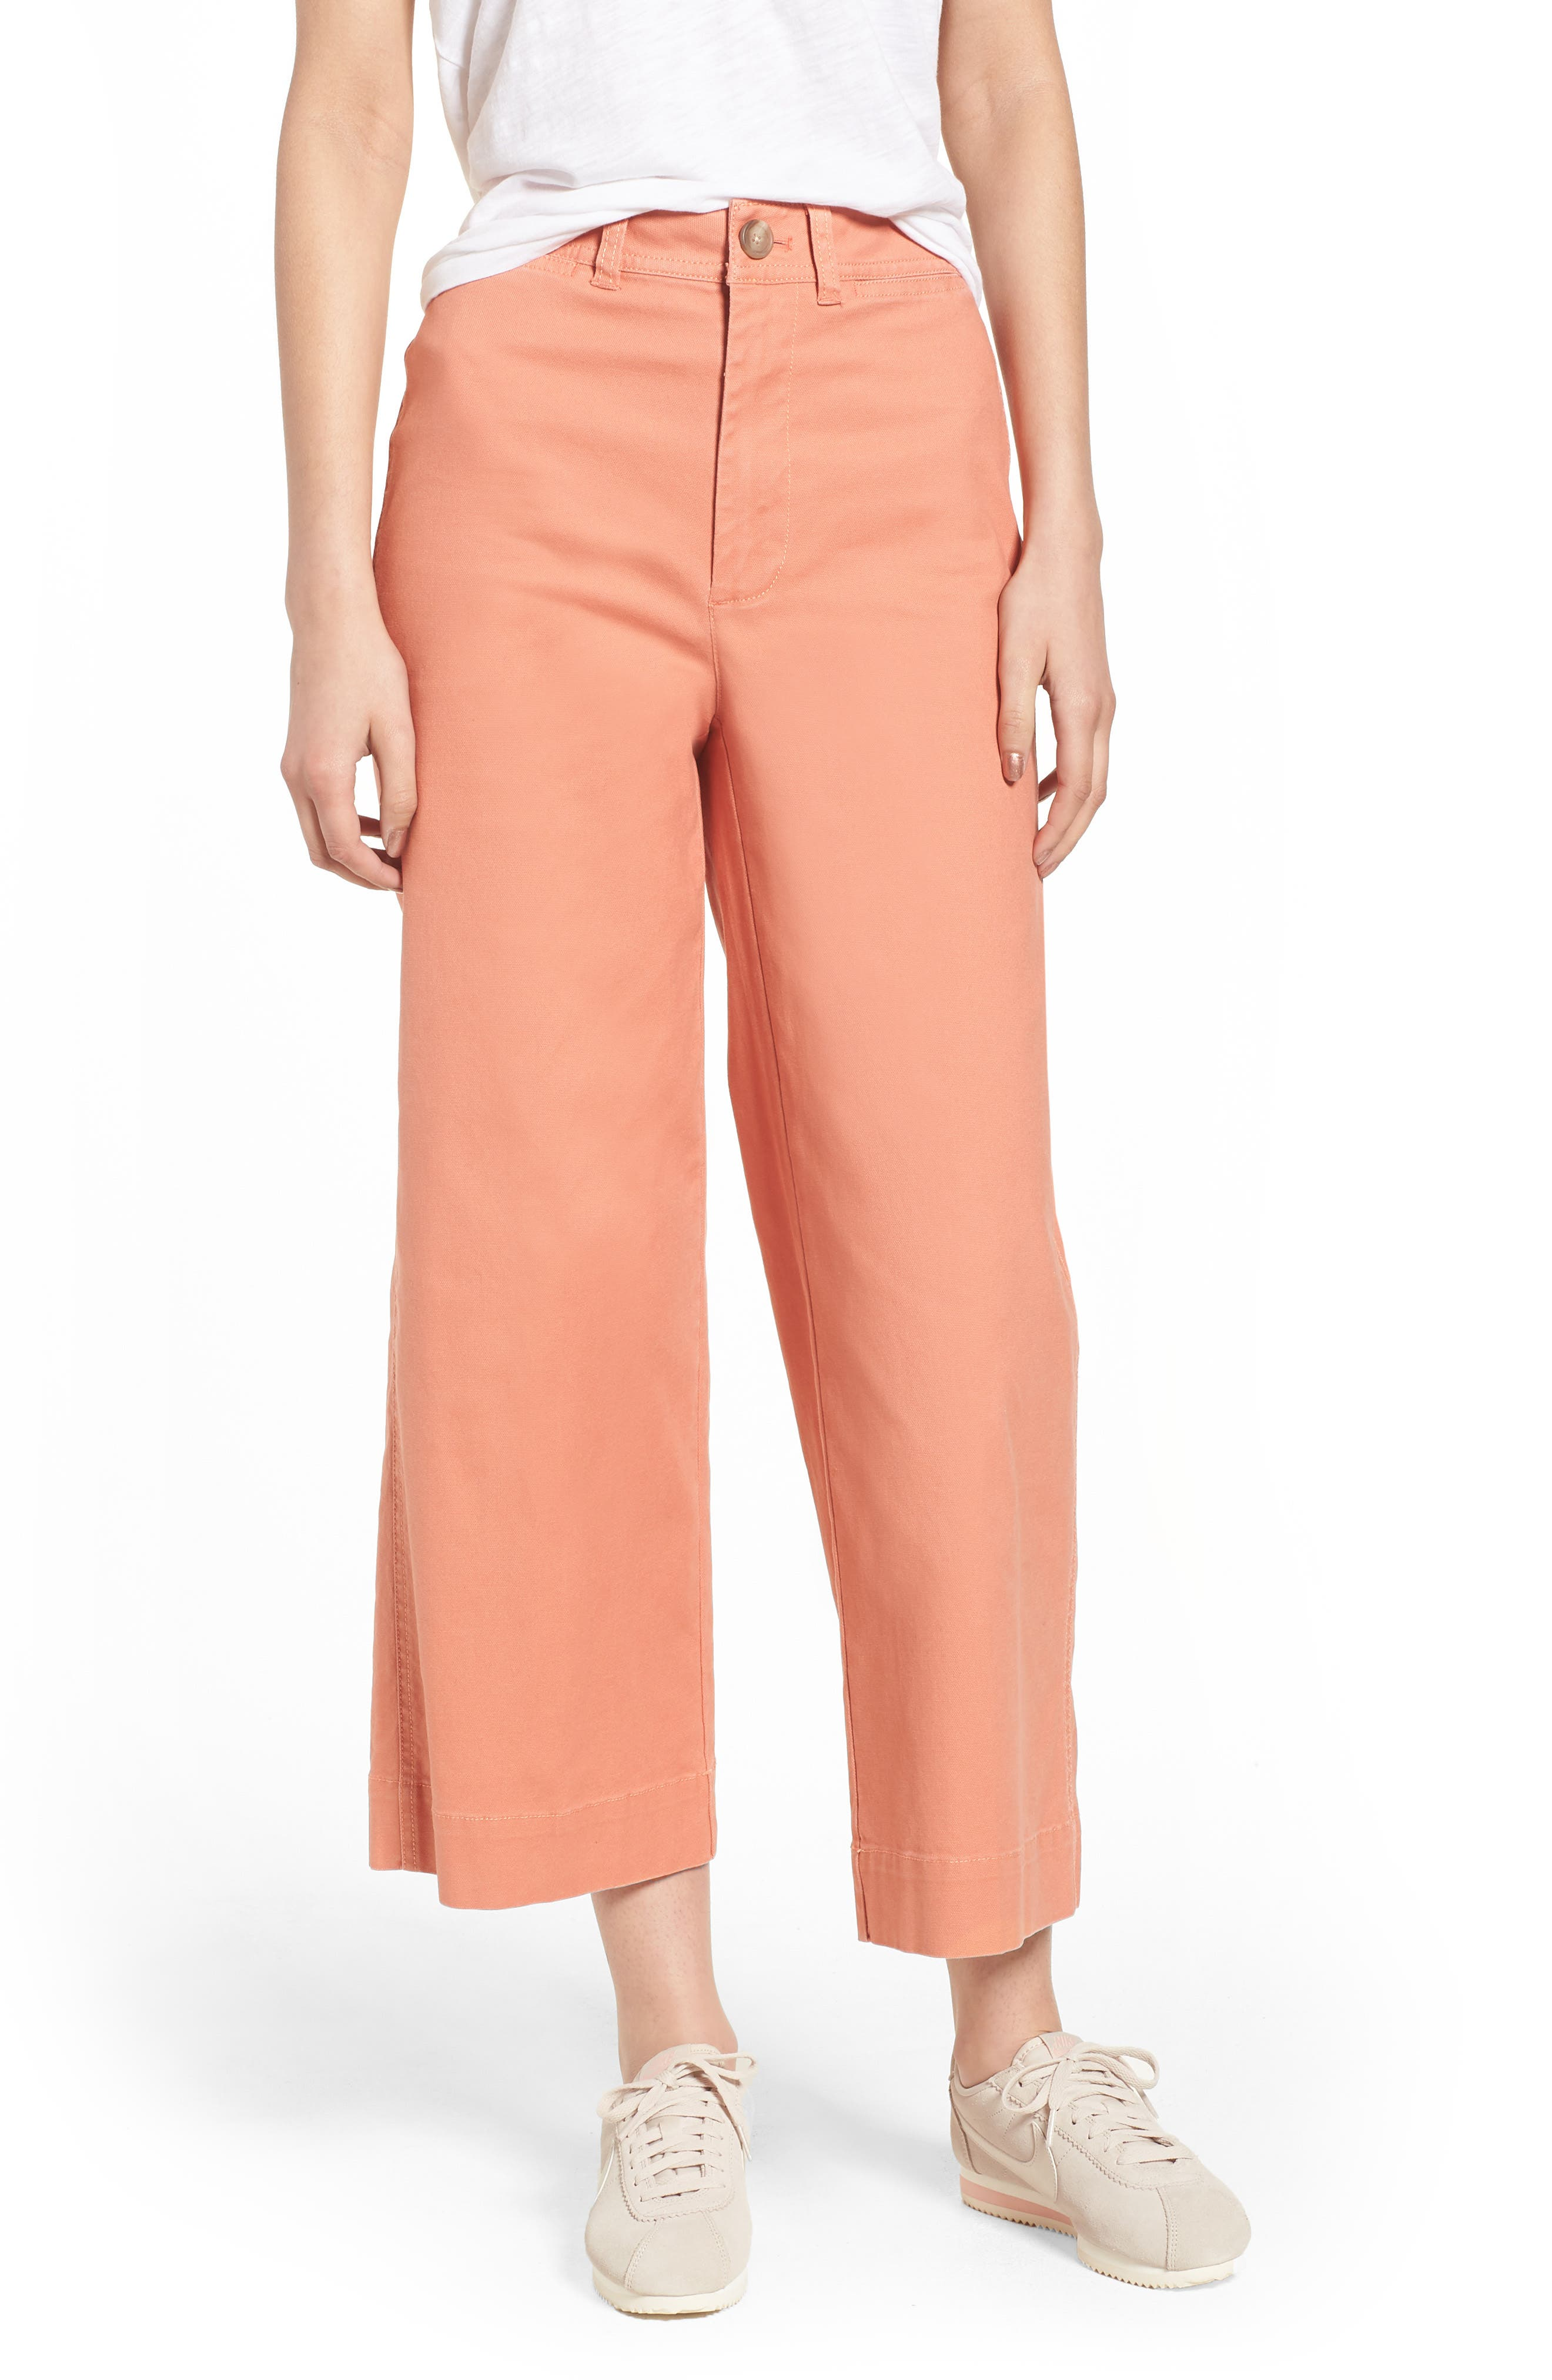 Emmett Crop Wide Leg Pants,                         Main,                         color, Dried Coral